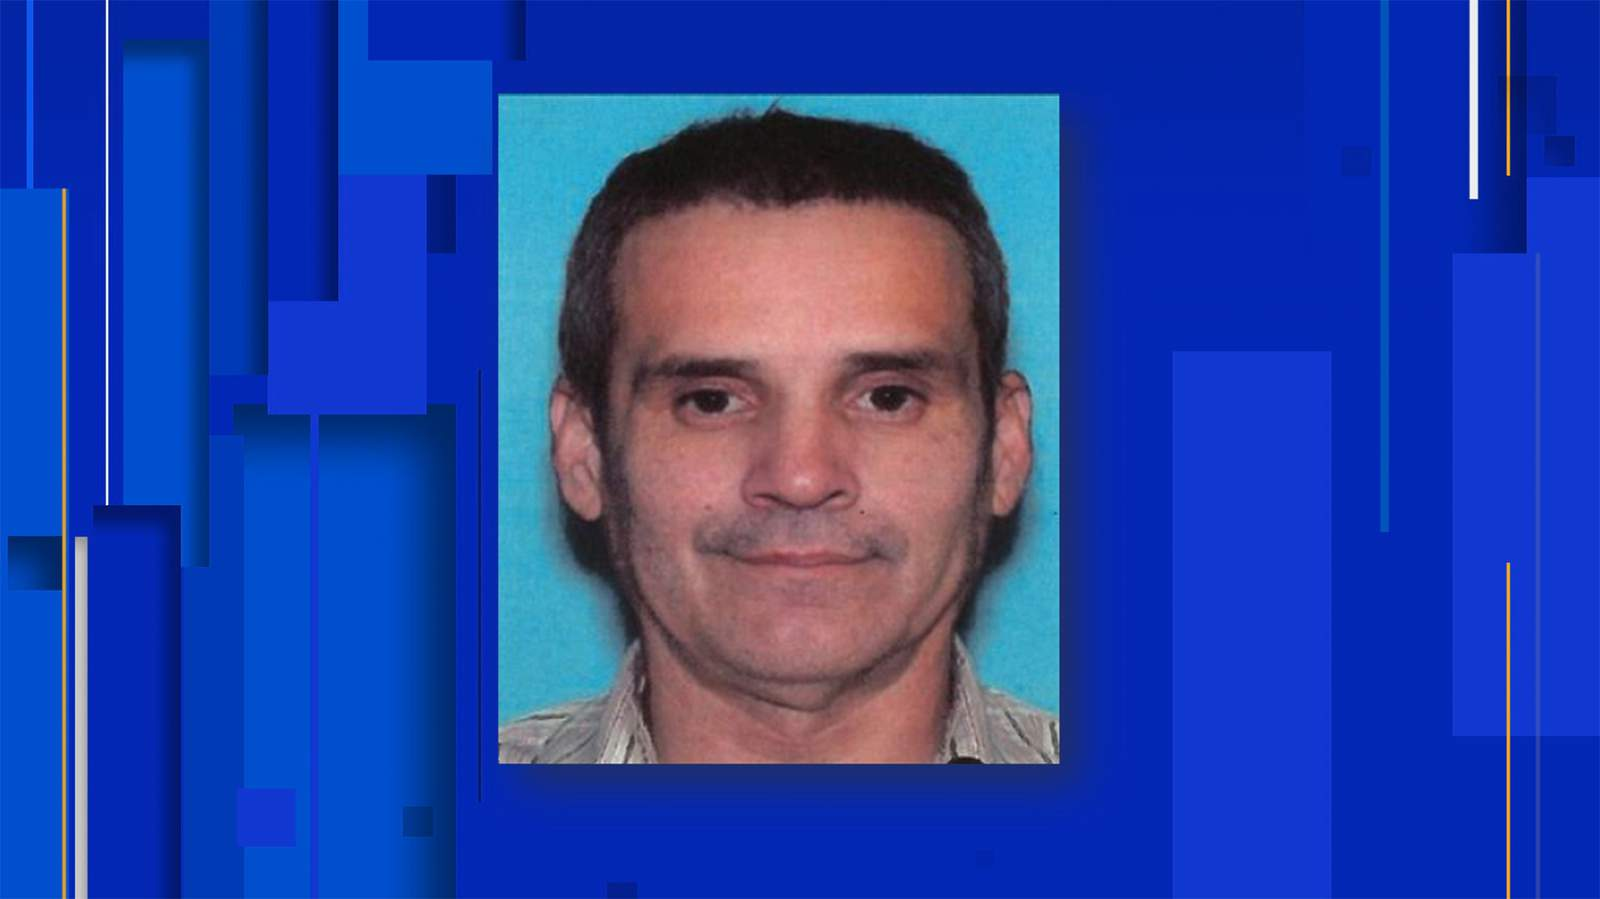 SAPD searching for man, 53, who disappeared under 'suspicious circumstances' - KSAT San Antonio